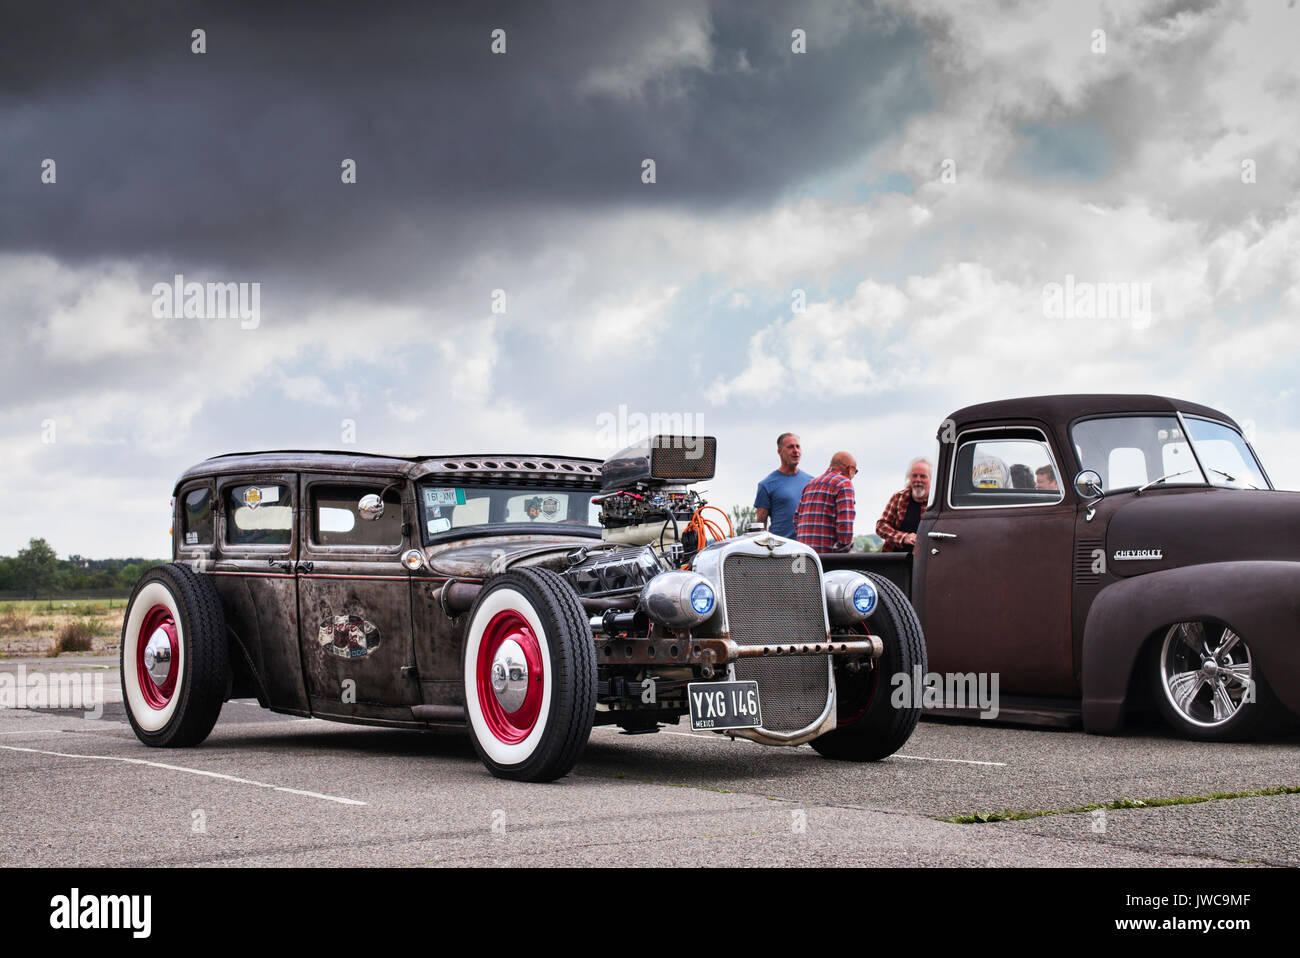 1931 Ford Chopped and Dropped Rat Rod custom car at an America car ...